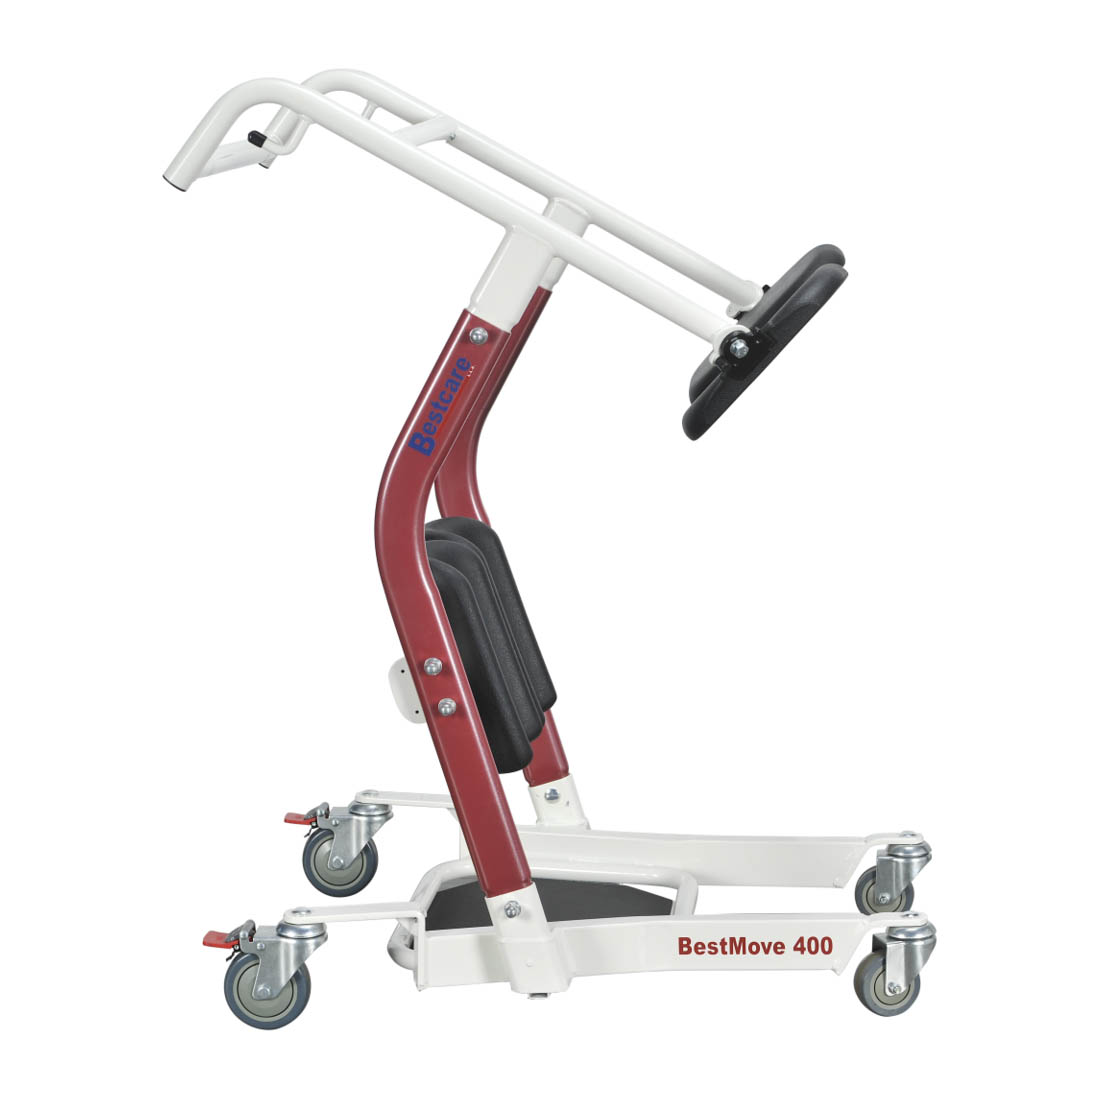 BestMove Spryte STA400 Stand Assist Lift